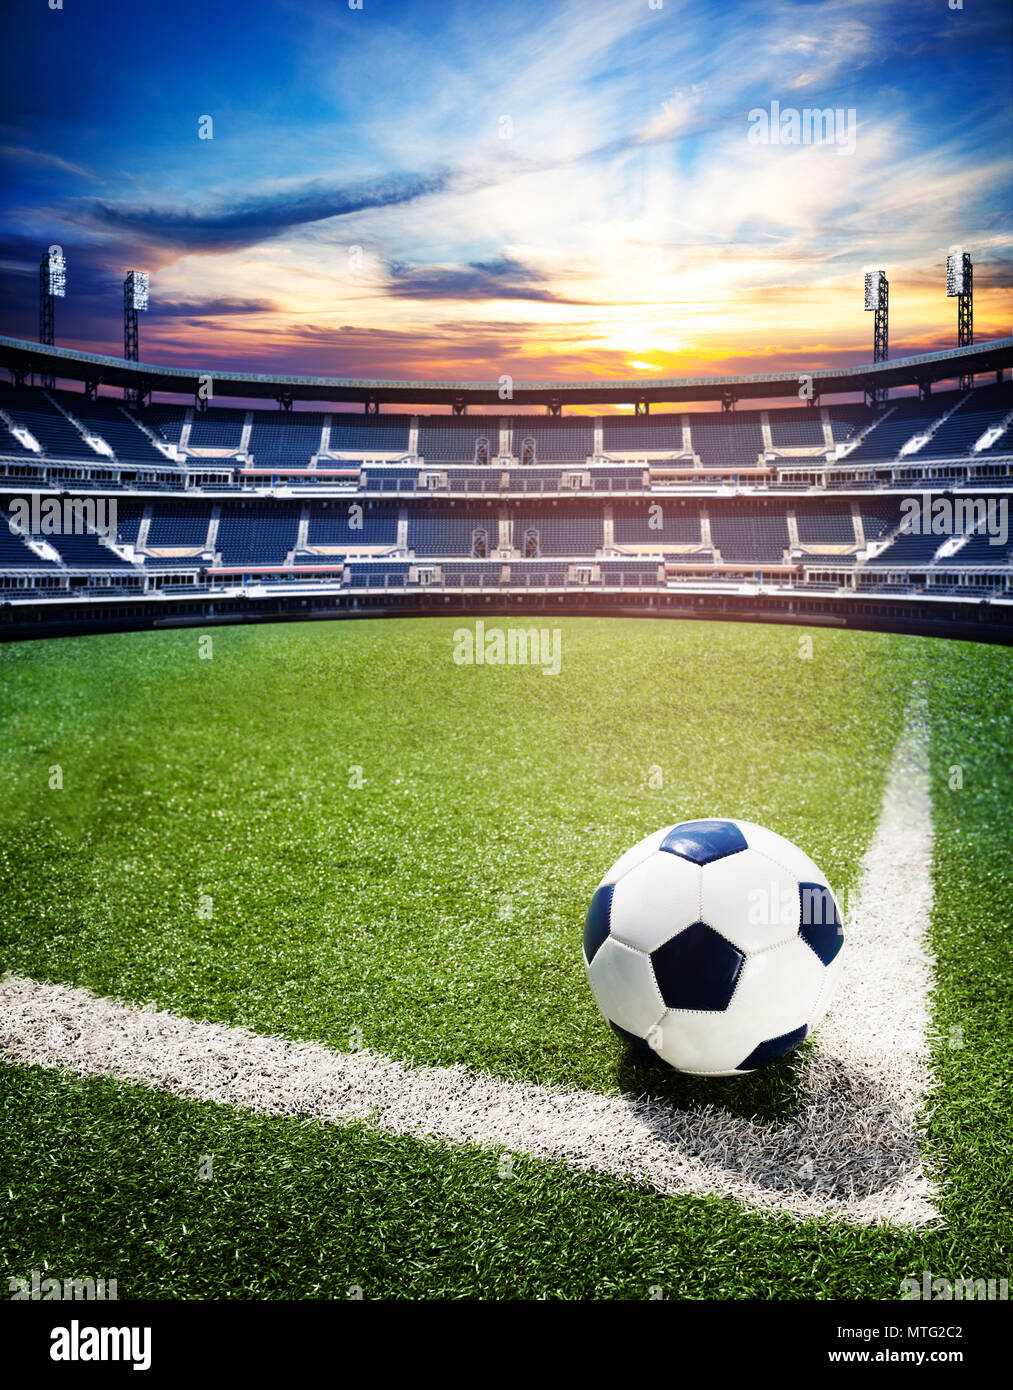 concept of soccer world cup or national championship stadium background with football ball on the big field stock photo alamy https www alamy com concept of soccer world cup or national championship stadium background with football ball on the big field image187208562 html